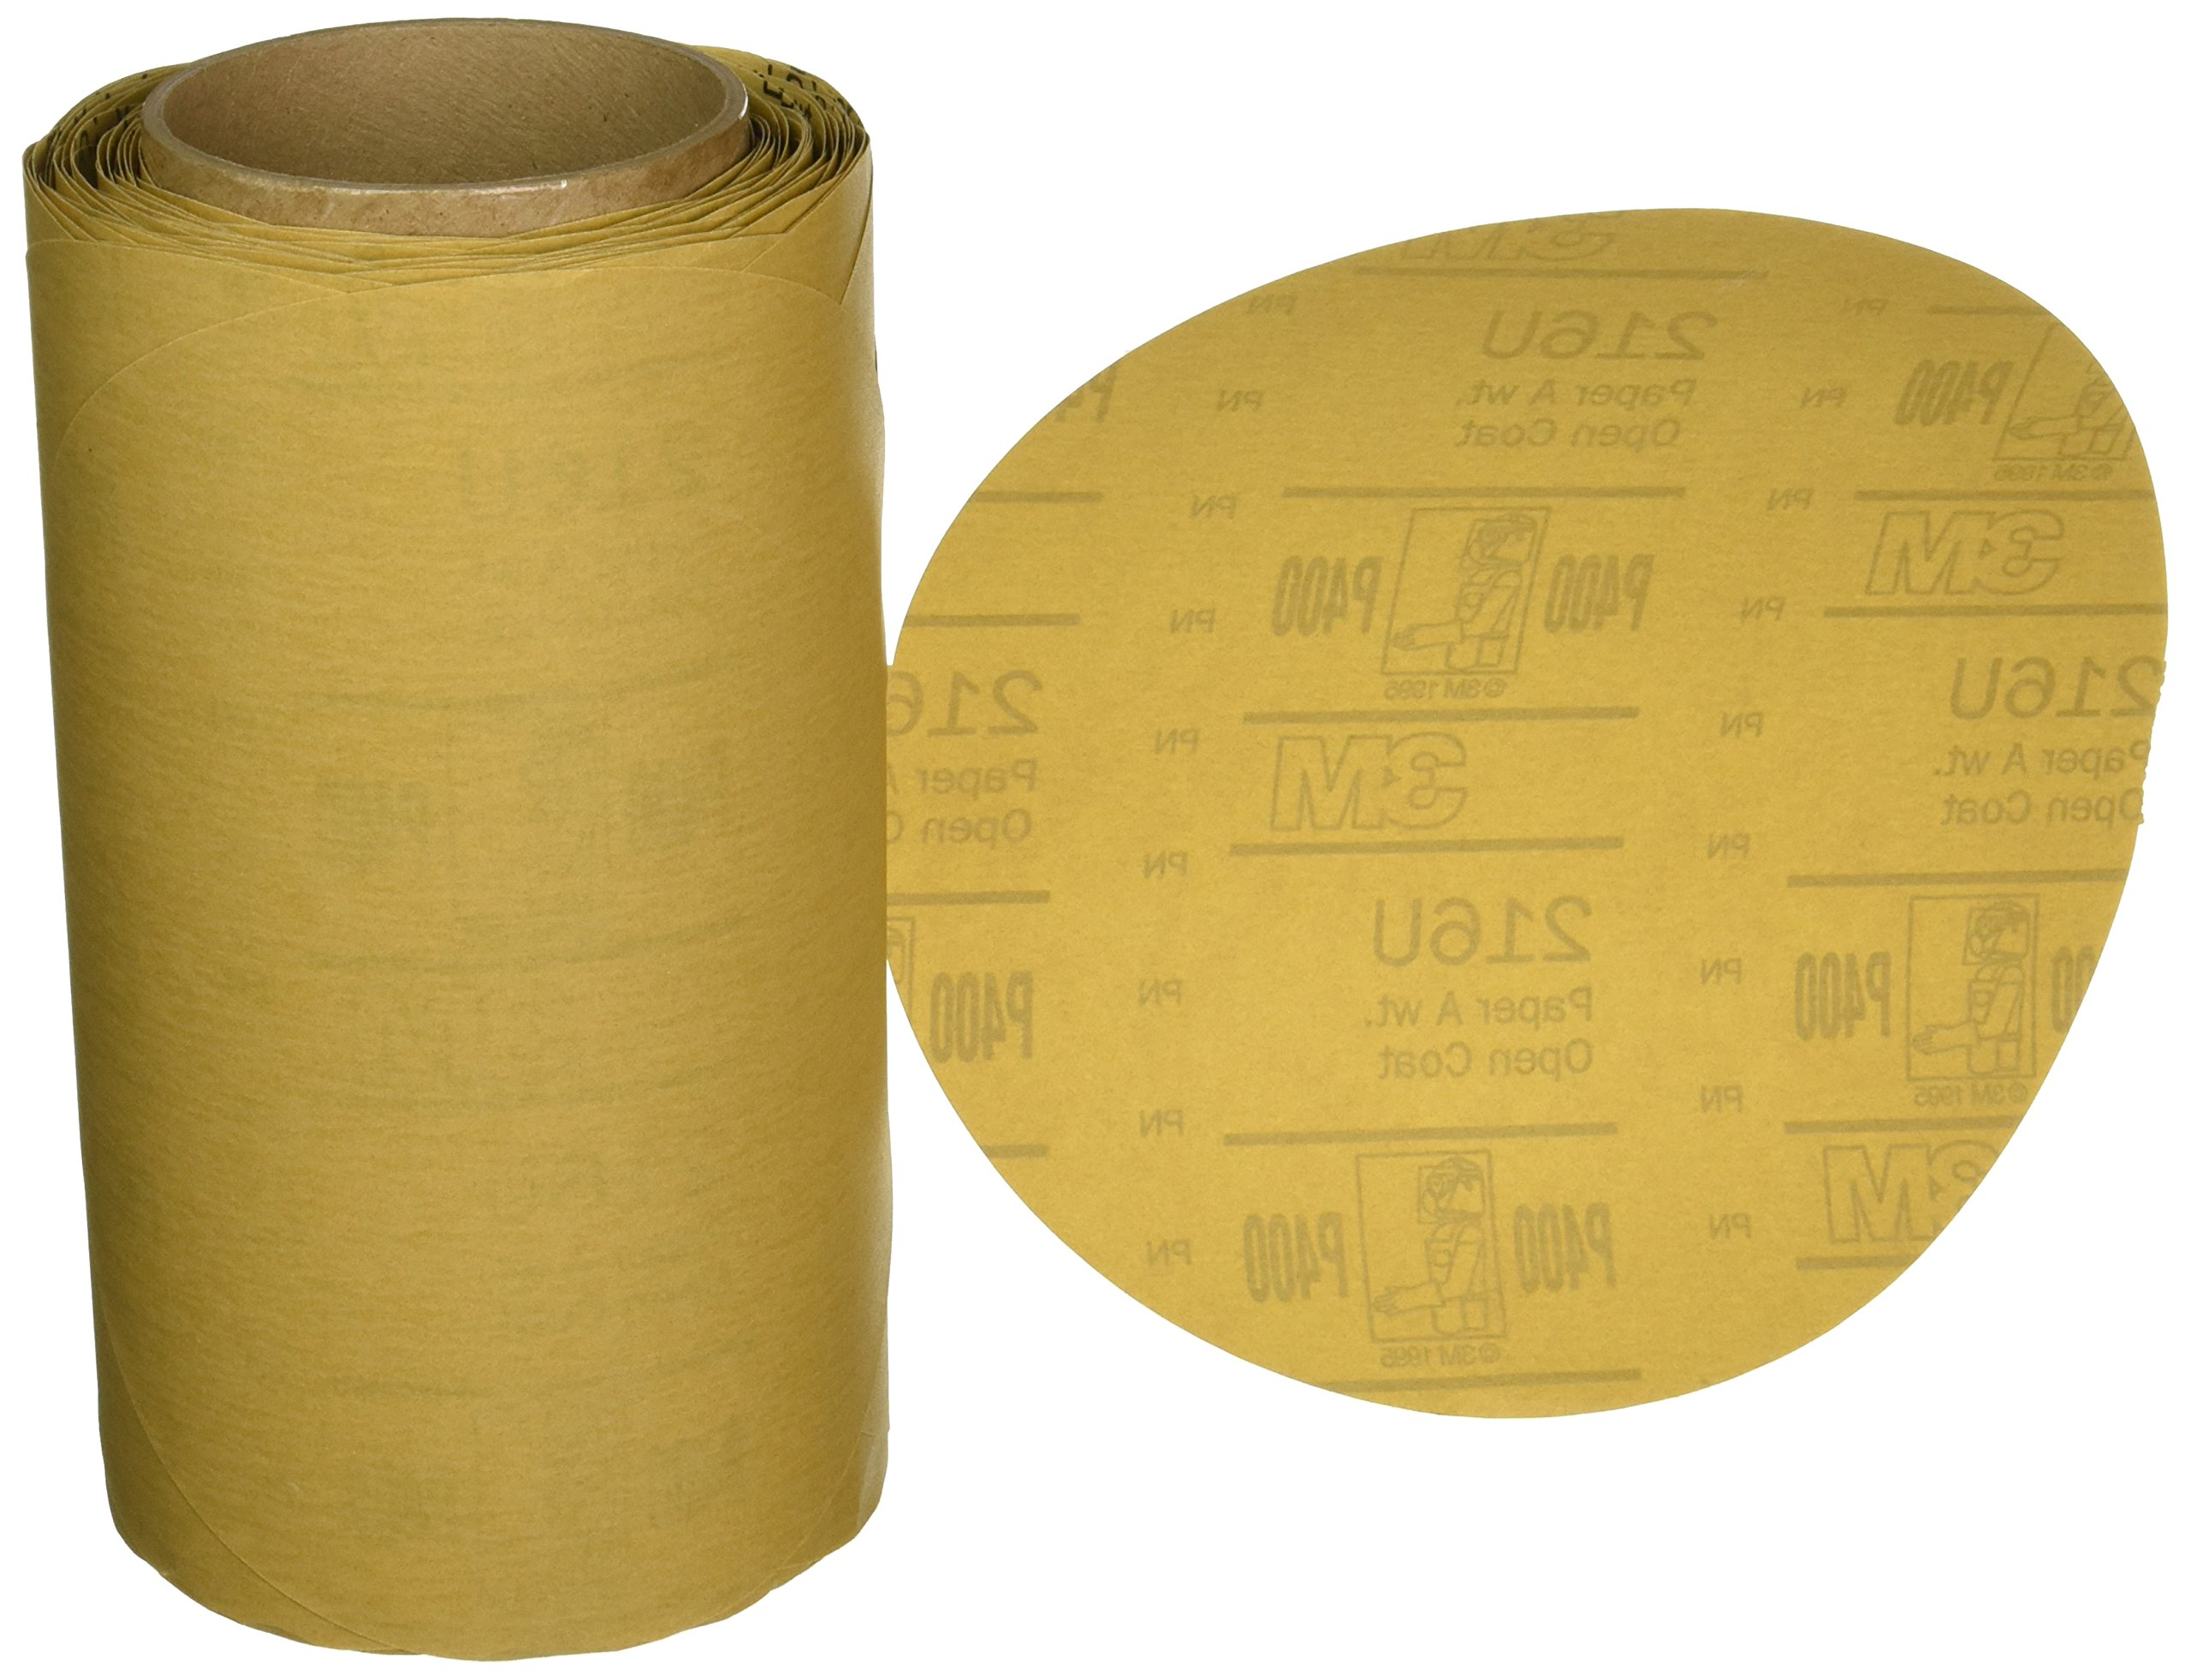 3M Stikit Gold Paper Disc Roll 216U, Aluminum Oxide, 8'' Diameter, P400 Grit (Roll of 125)